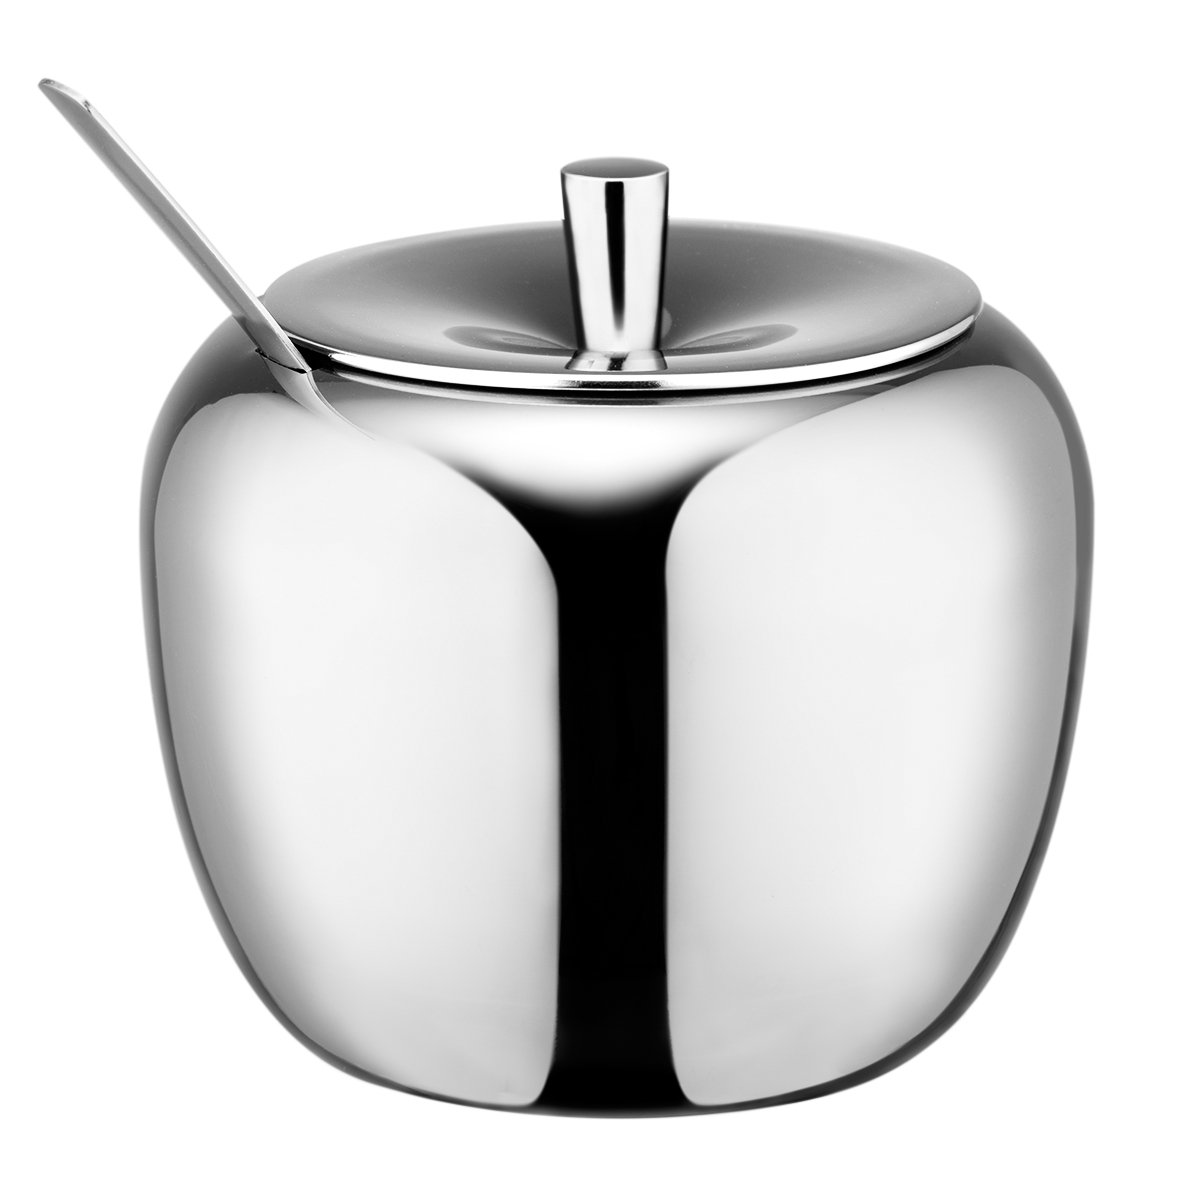 Sugar bowls with lids - Amazon Com Hardnok Stainless Steel Sugar Bowl With Lid And Sugar Spoon 16 9 Ounces 500 Milliliter Sugar Bowls